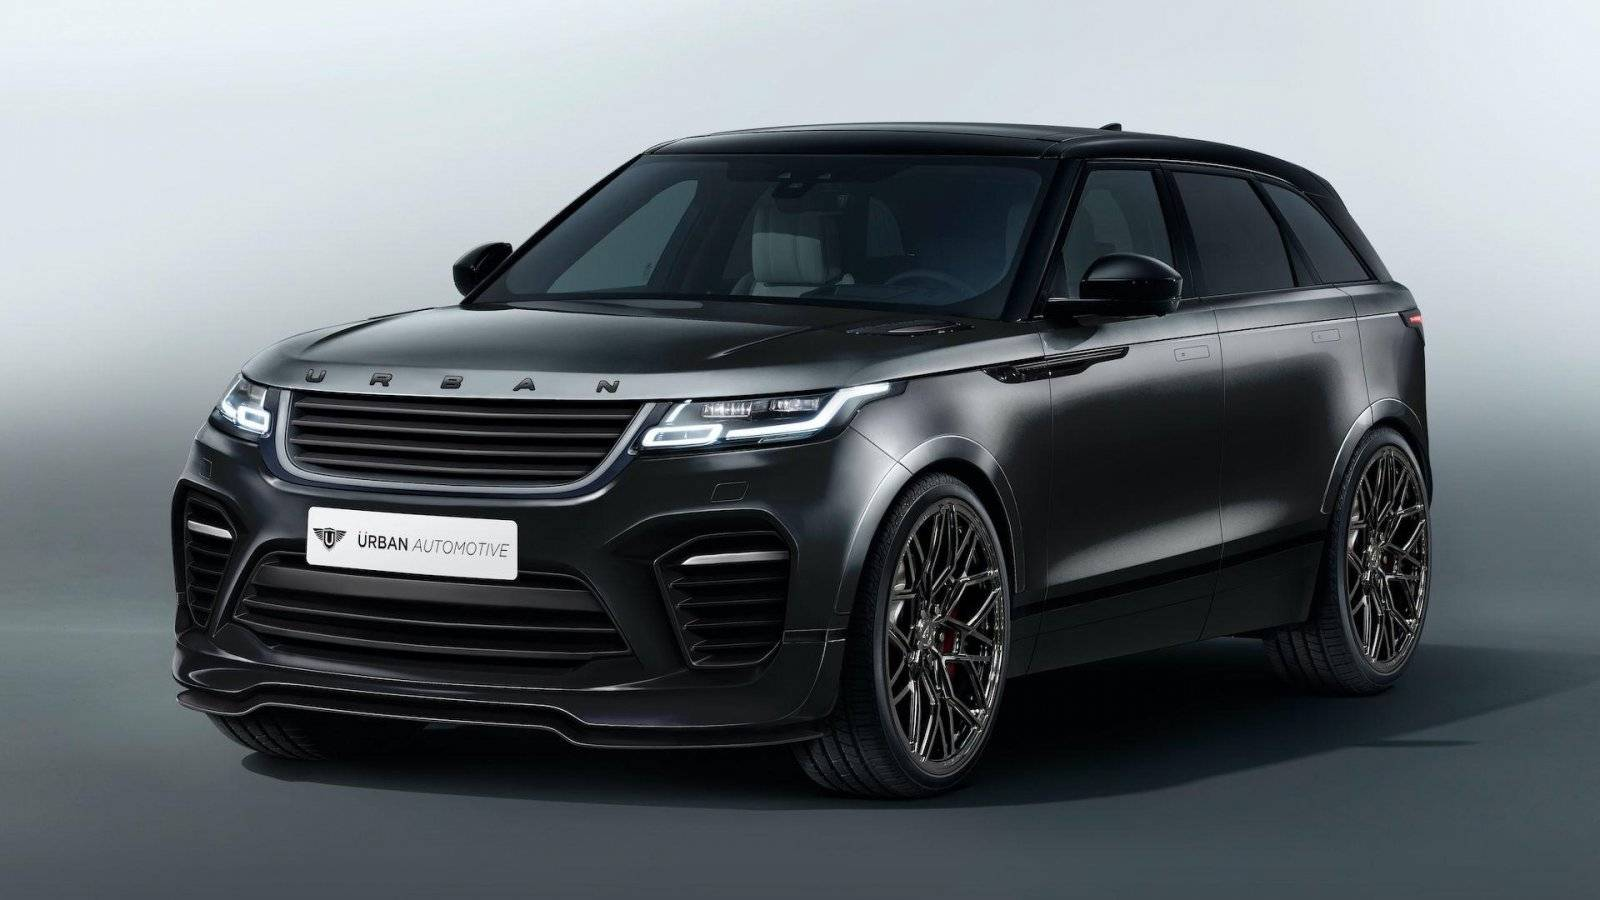 range rover velar heeft zijn eerste make over te pakken tuning styling. Black Bedroom Furniture Sets. Home Design Ideas